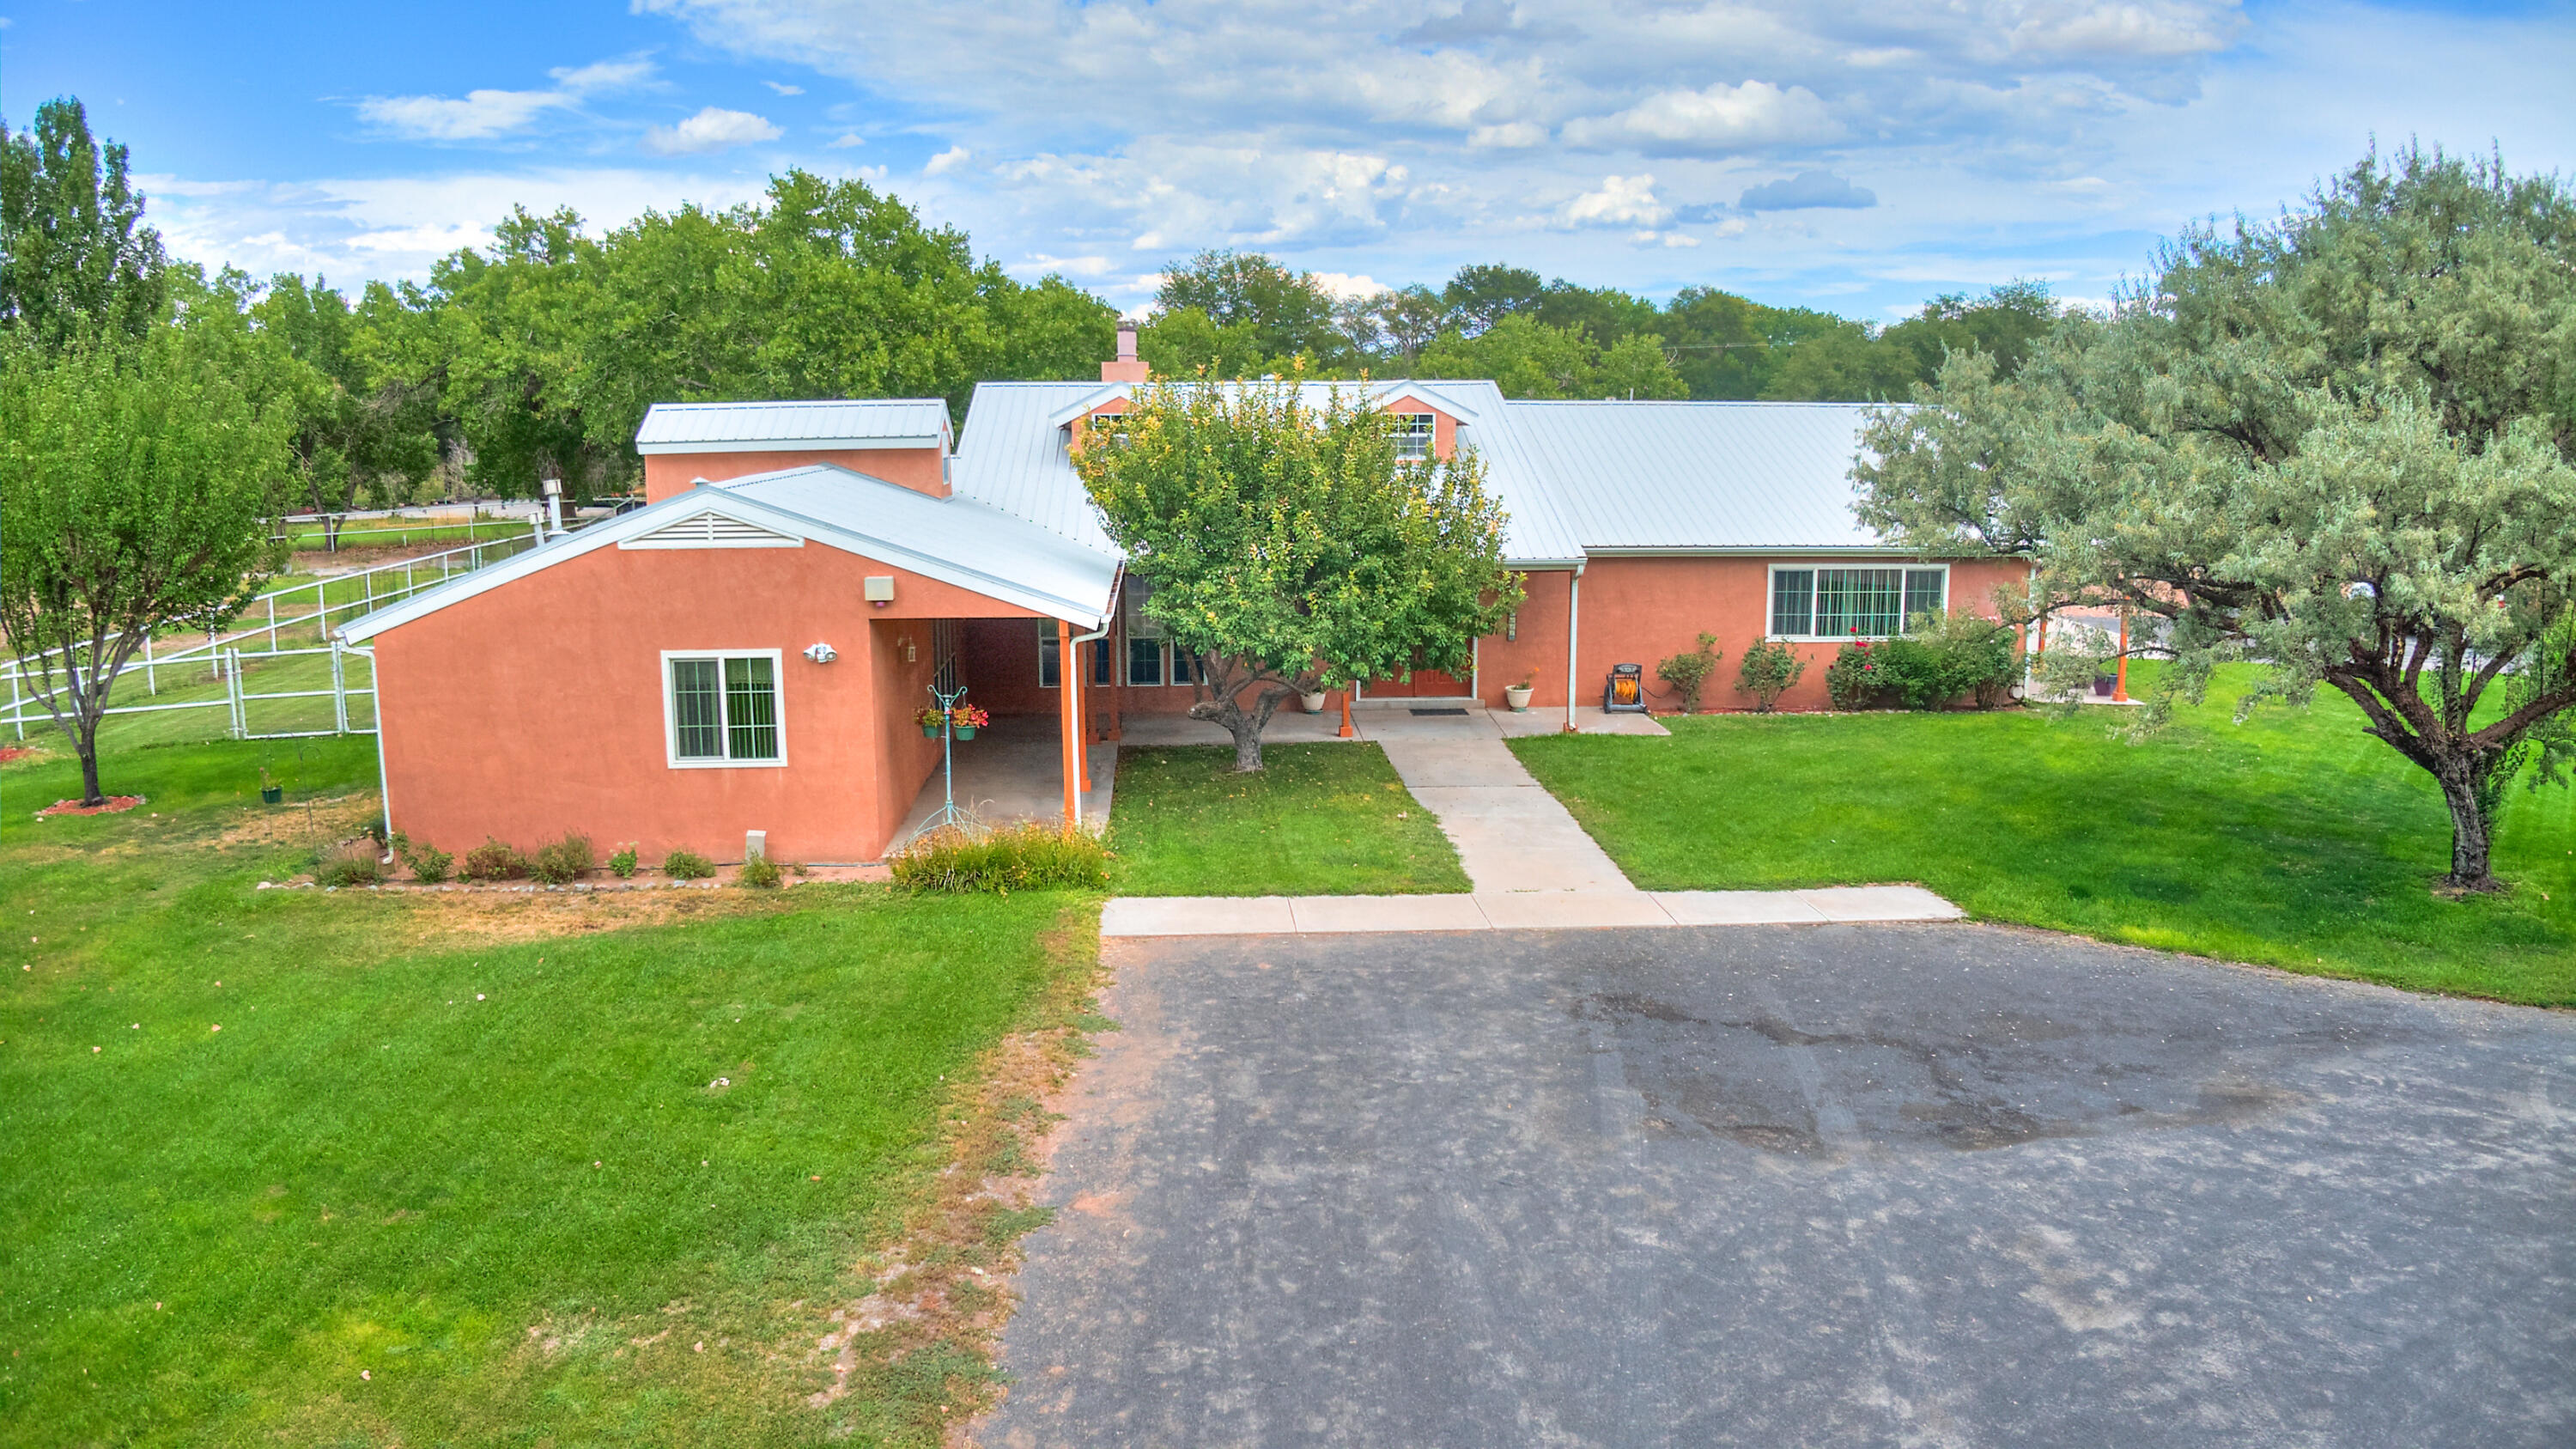 Welcome! Lovely Northern New Mexico style home situated on 1.46 acres on treelined cul-de-sac in the verdant South Valley. Tired of the hustle & bustle of the City? Come on down! This custom home designed by John Freidman offers 4 BR's, 3 Baths, oversized 3 car garage plus 16 x 16 heated & cooled professional glass enclosed recreation room with pool table or perfect for home office or home schooling. Amenities include wood ceilings, hardwd & tiled flrs, nichos, clerestory & dormer windows, vaulted ceilings, wood burning fireplace,  country  Kit, separate owners suite & more. Updates: furnace & 2 AC units 2012, roof tune-up 2021,sprinkler system 2021 & almost all windows including the dormer windows have been replaced. Fully fenced backyard plus separate fenced corral. City Sewer. Well.